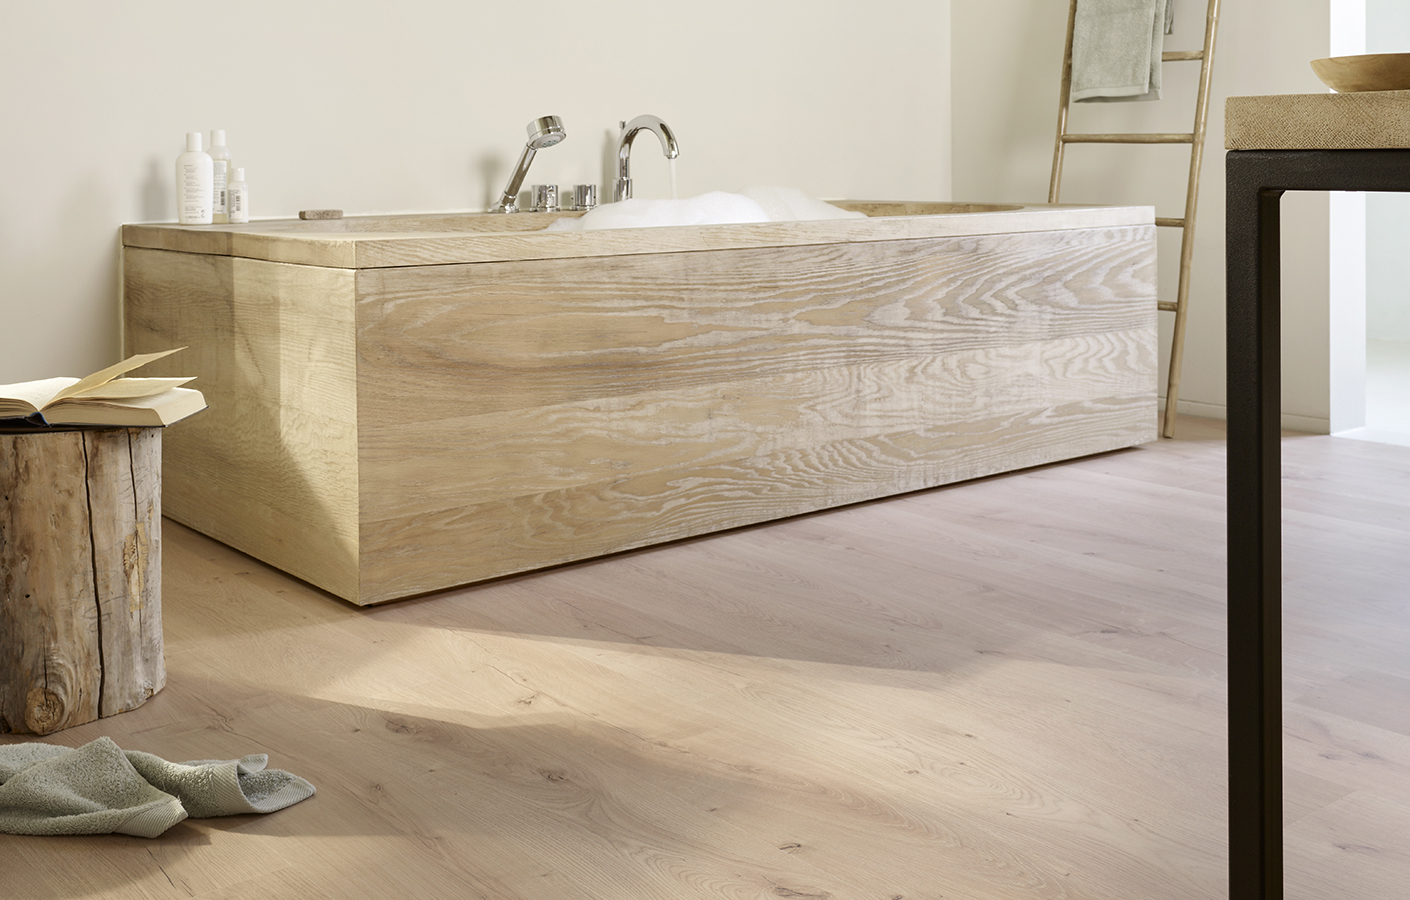 Berry Alloc Revendeur How To Pick The Perfect Bathroom Flooring And Walls Berryalloc